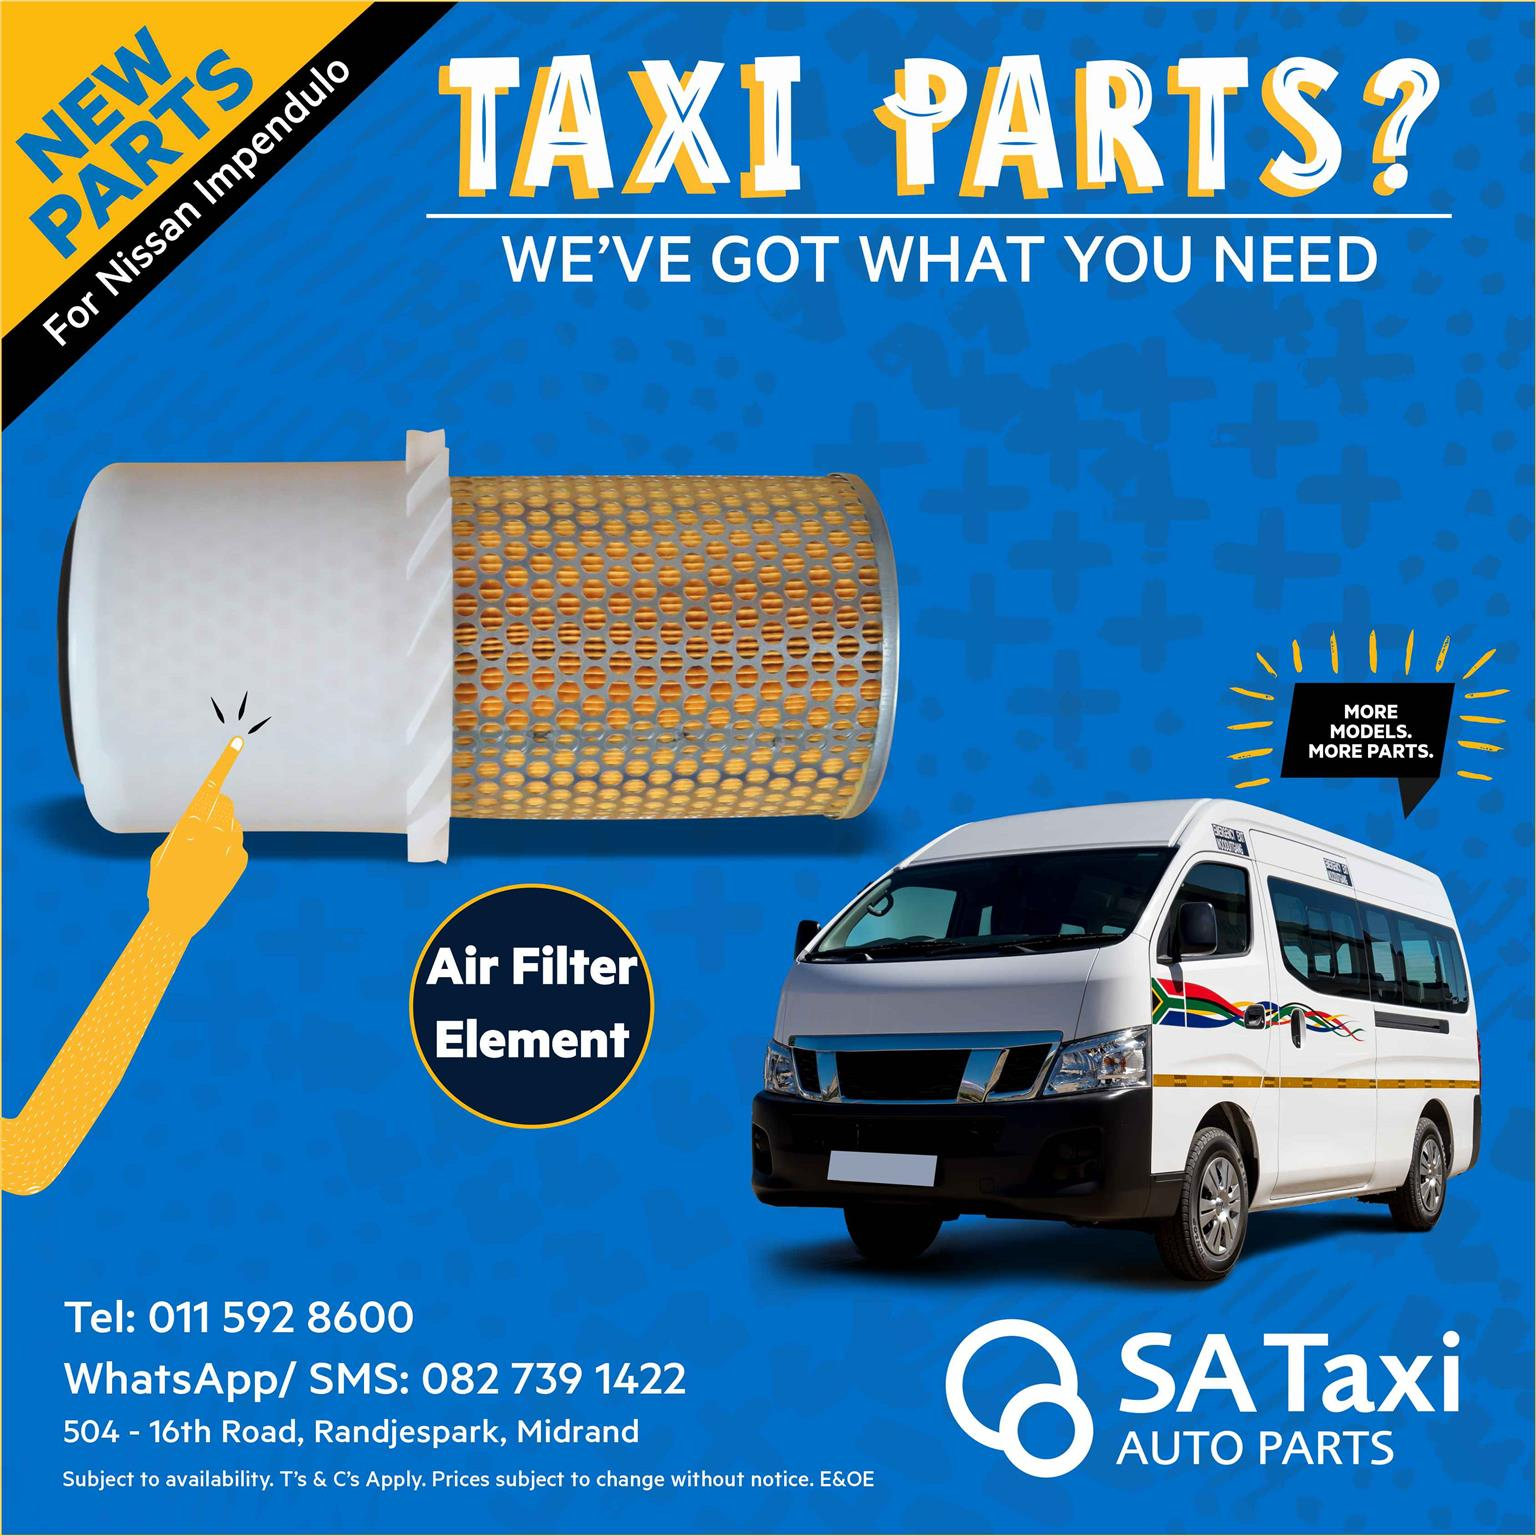 NEW Air Filter Element suitable for Nissan NV350 Impendulo -  SA Taxi Auto Parts quality taxi spares